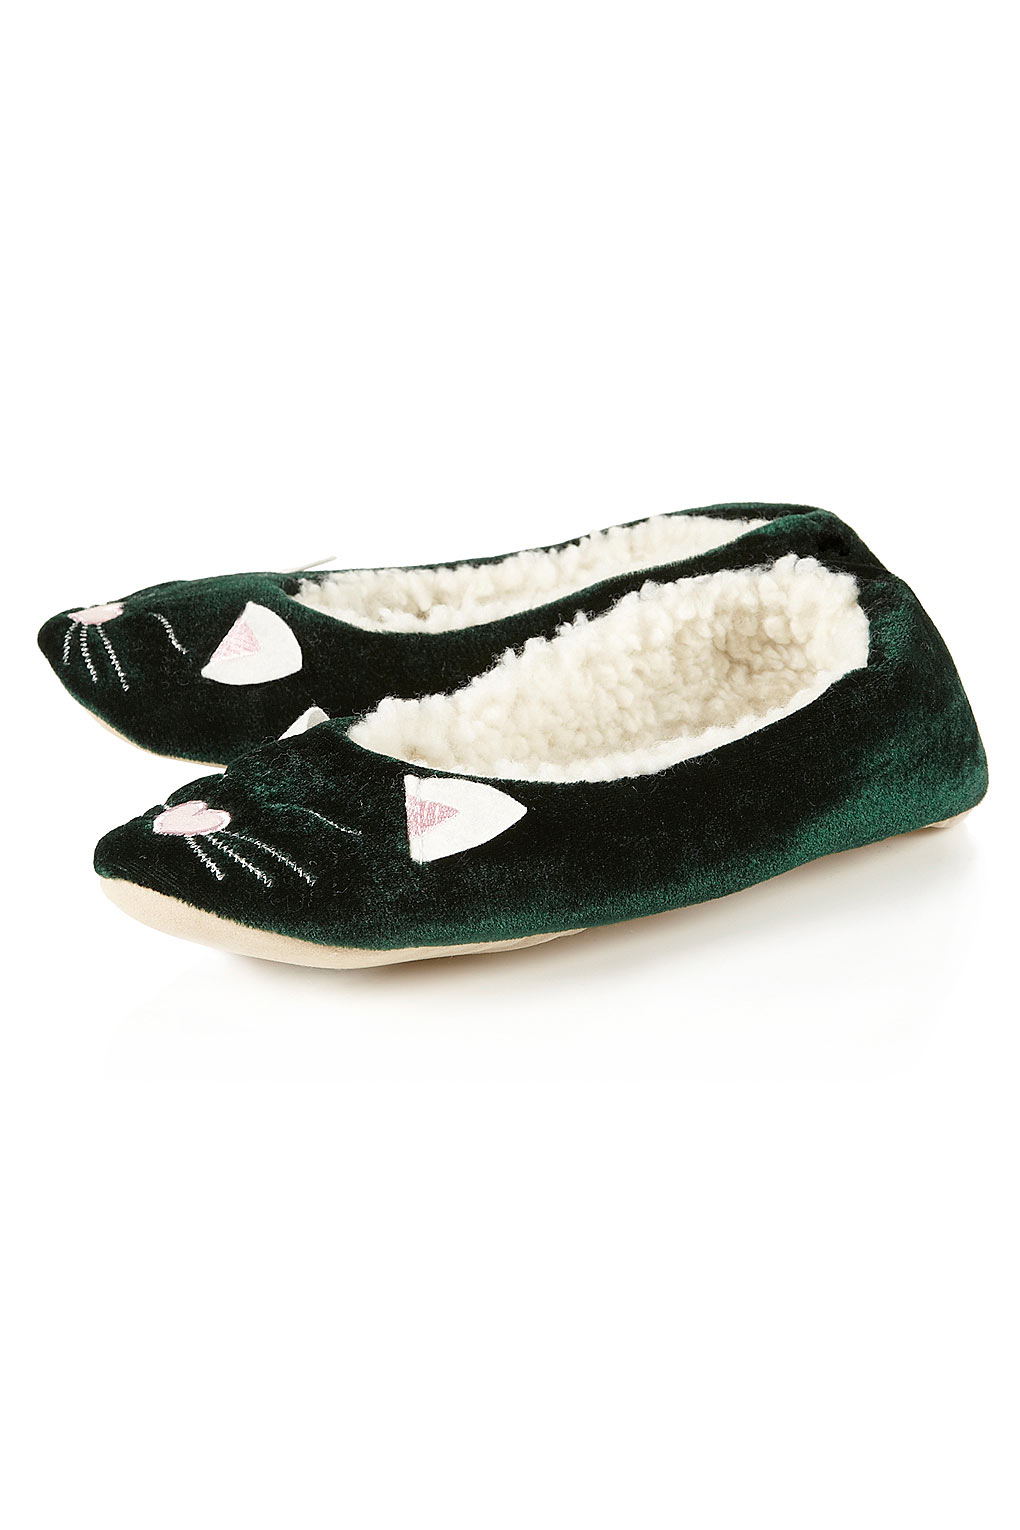 Charlotte Olympia cat shoes = perfect for Alexa, Katy ...